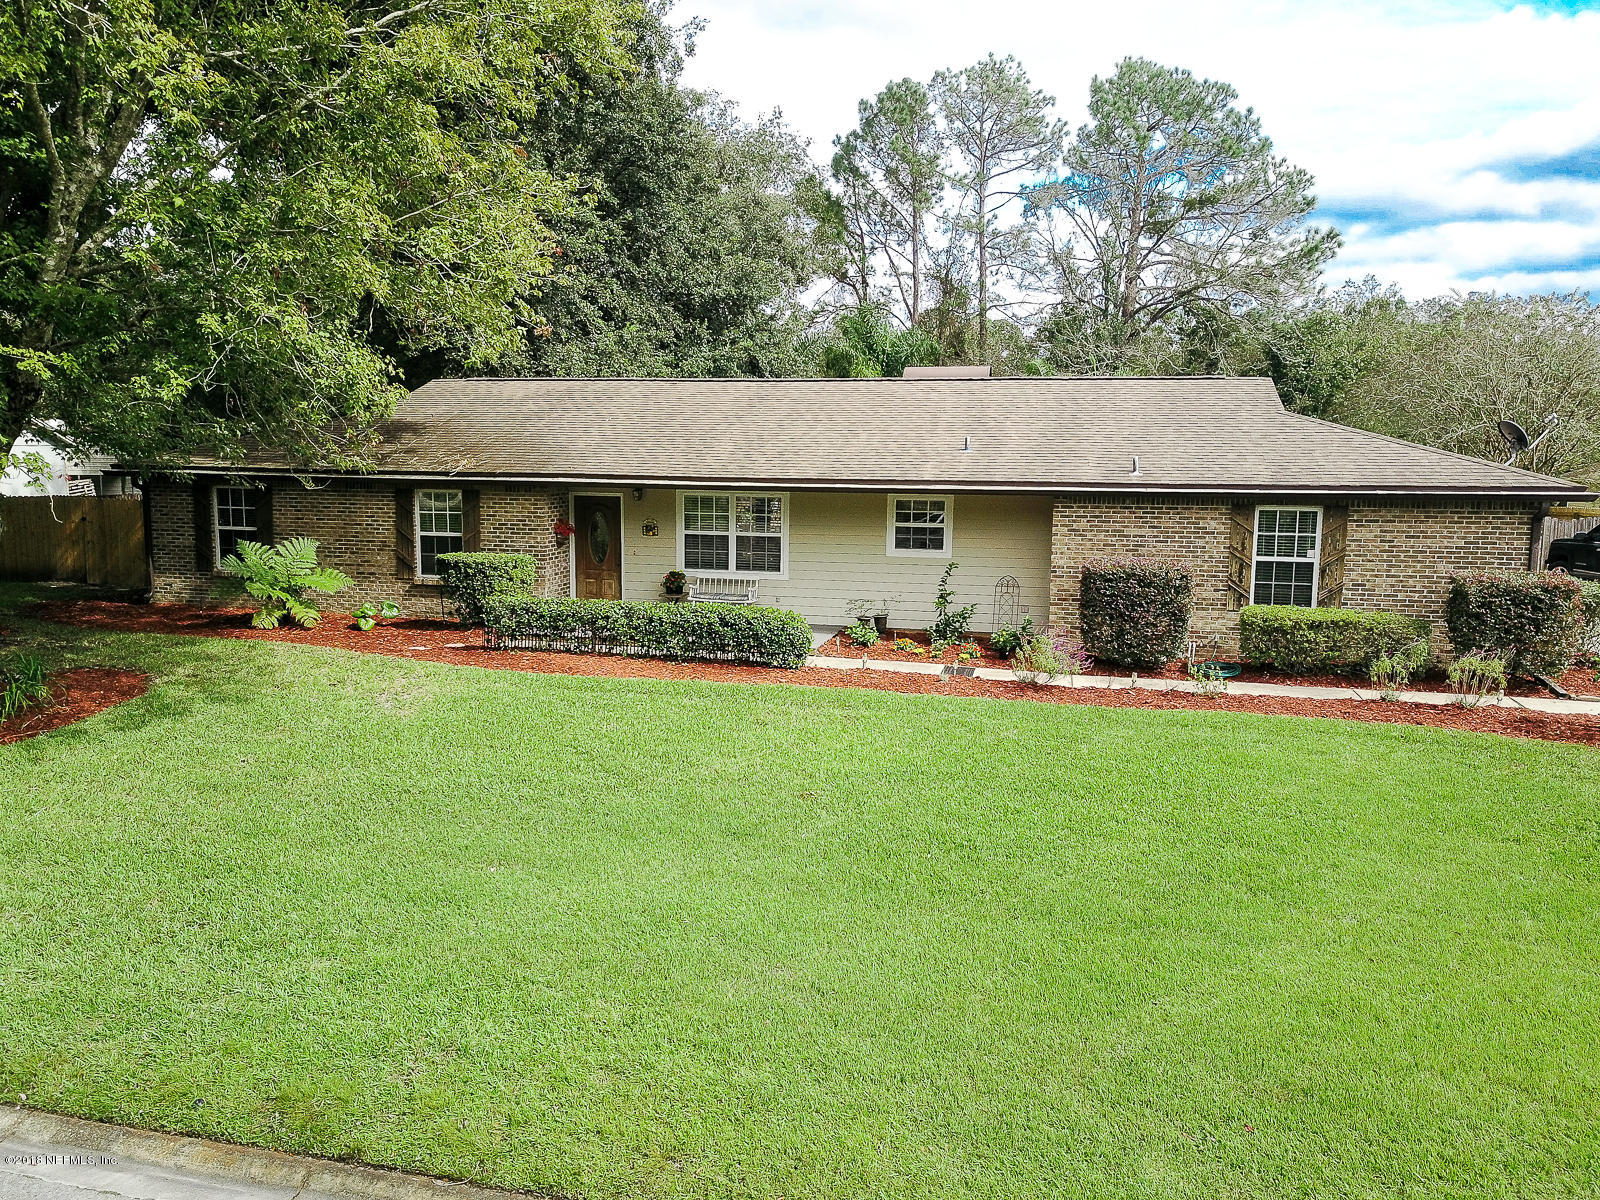 1927 CHOCTAW, MIDDLEBURG, FLORIDA 32068, 3 Bedrooms Bedrooms, ,2 BathroomsBathrooms,Residential - single family,For sale,CHOCTAW,964921